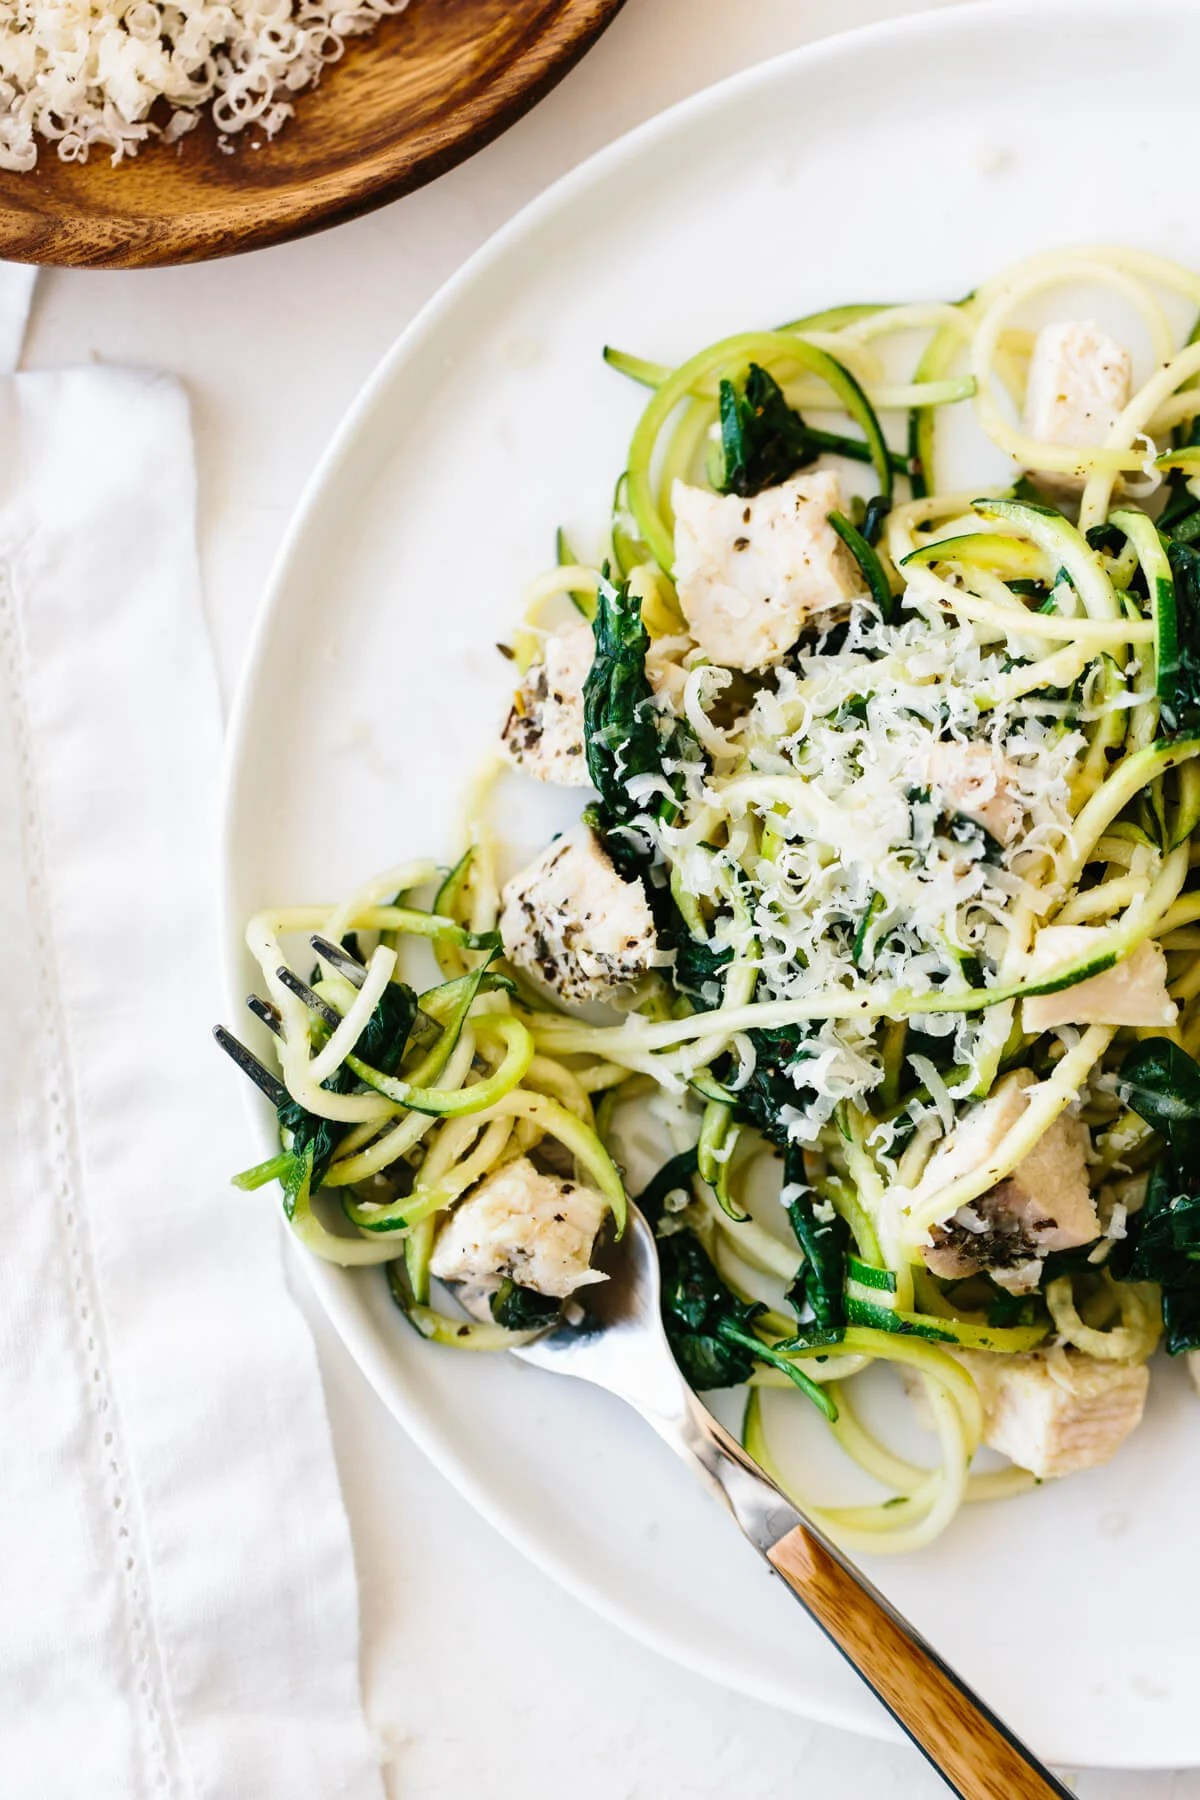 Zucchini noodles with chicken twirled on a fork on a plate.